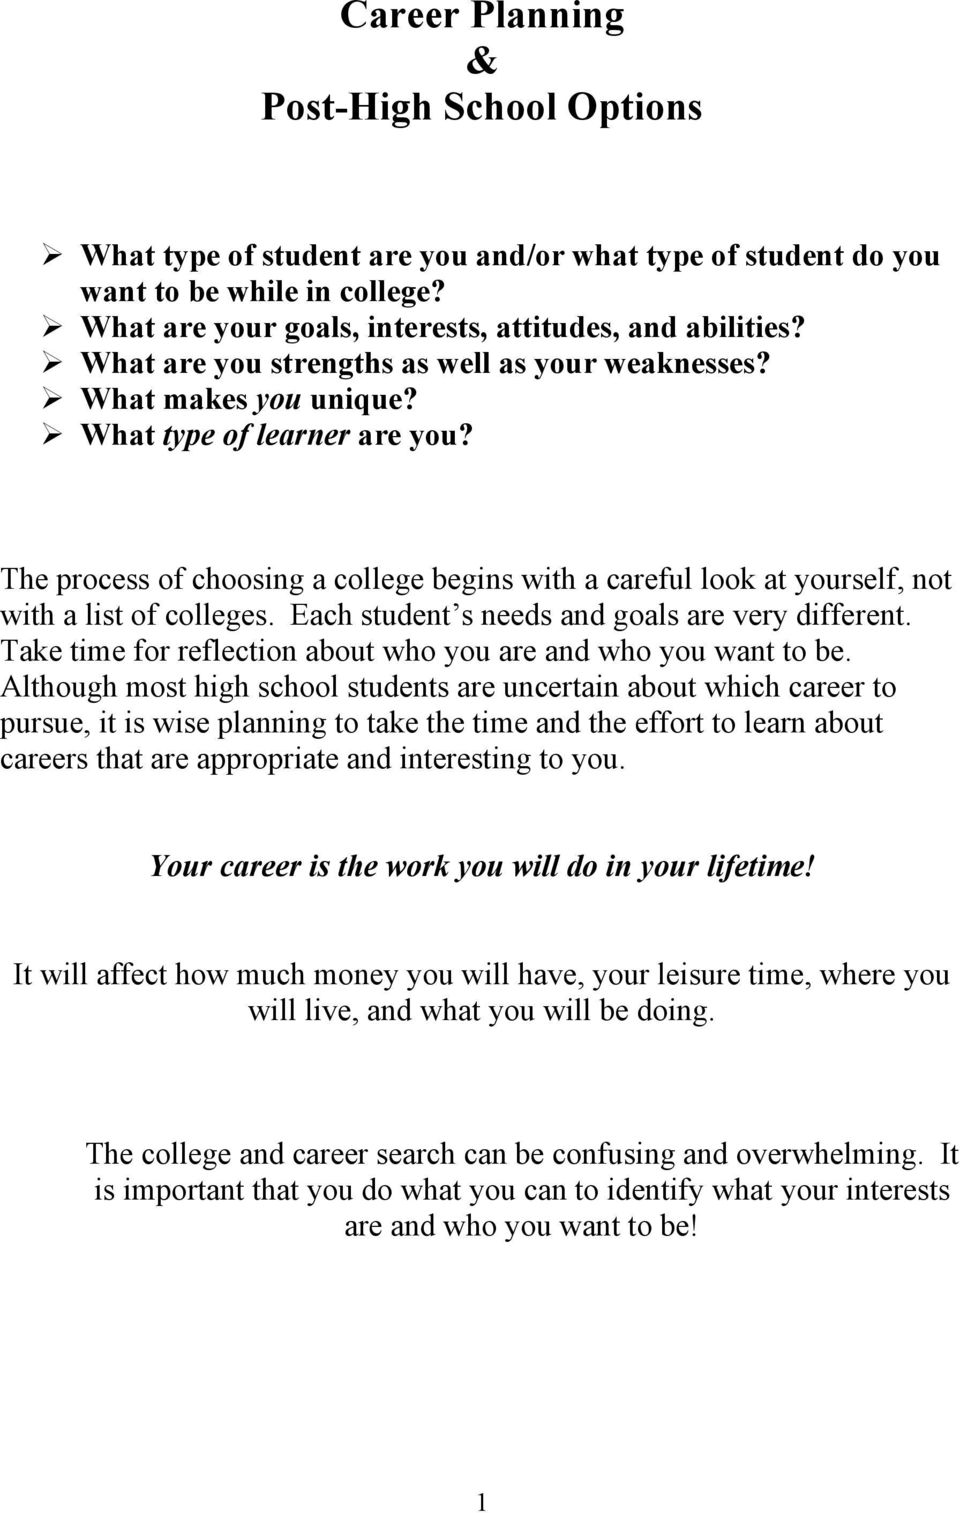 The process of choosing a college begins with a careful look at yourself, not with a list of colleges. Each student s needs and goals are very different.